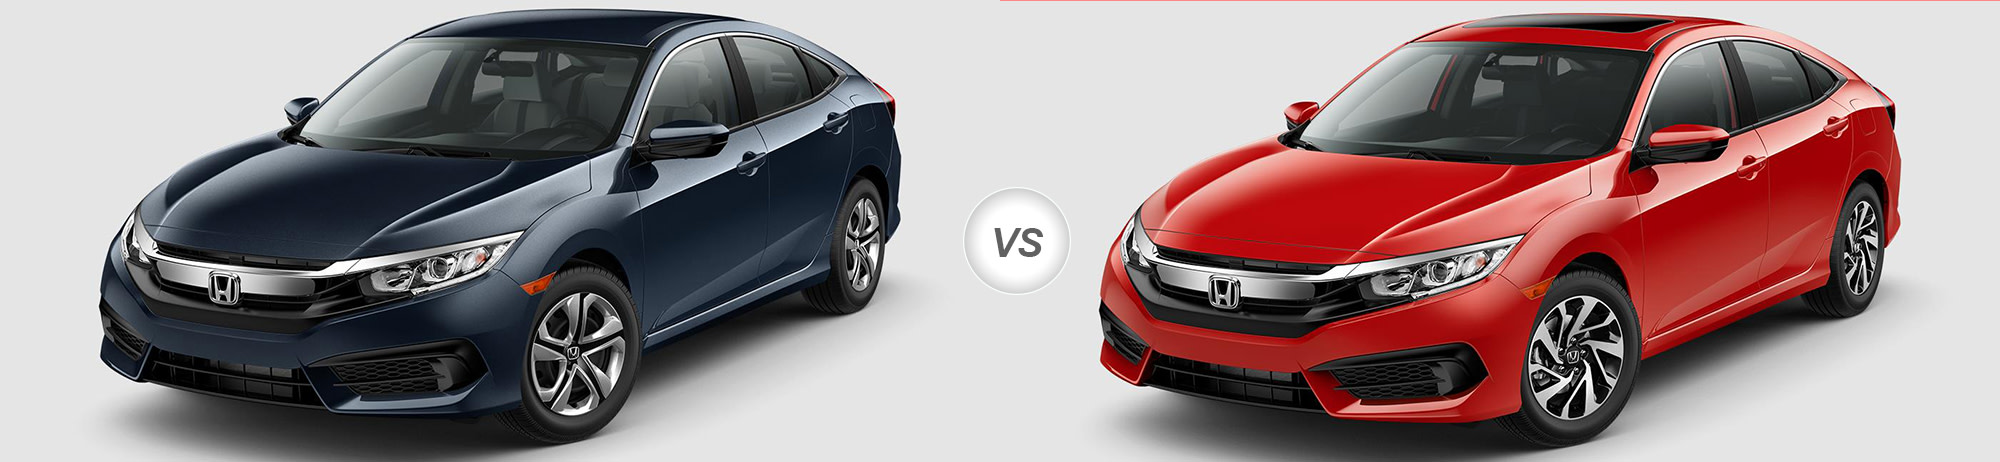 2018 Honda Civic LX Vs 2018 Honda Civic EX